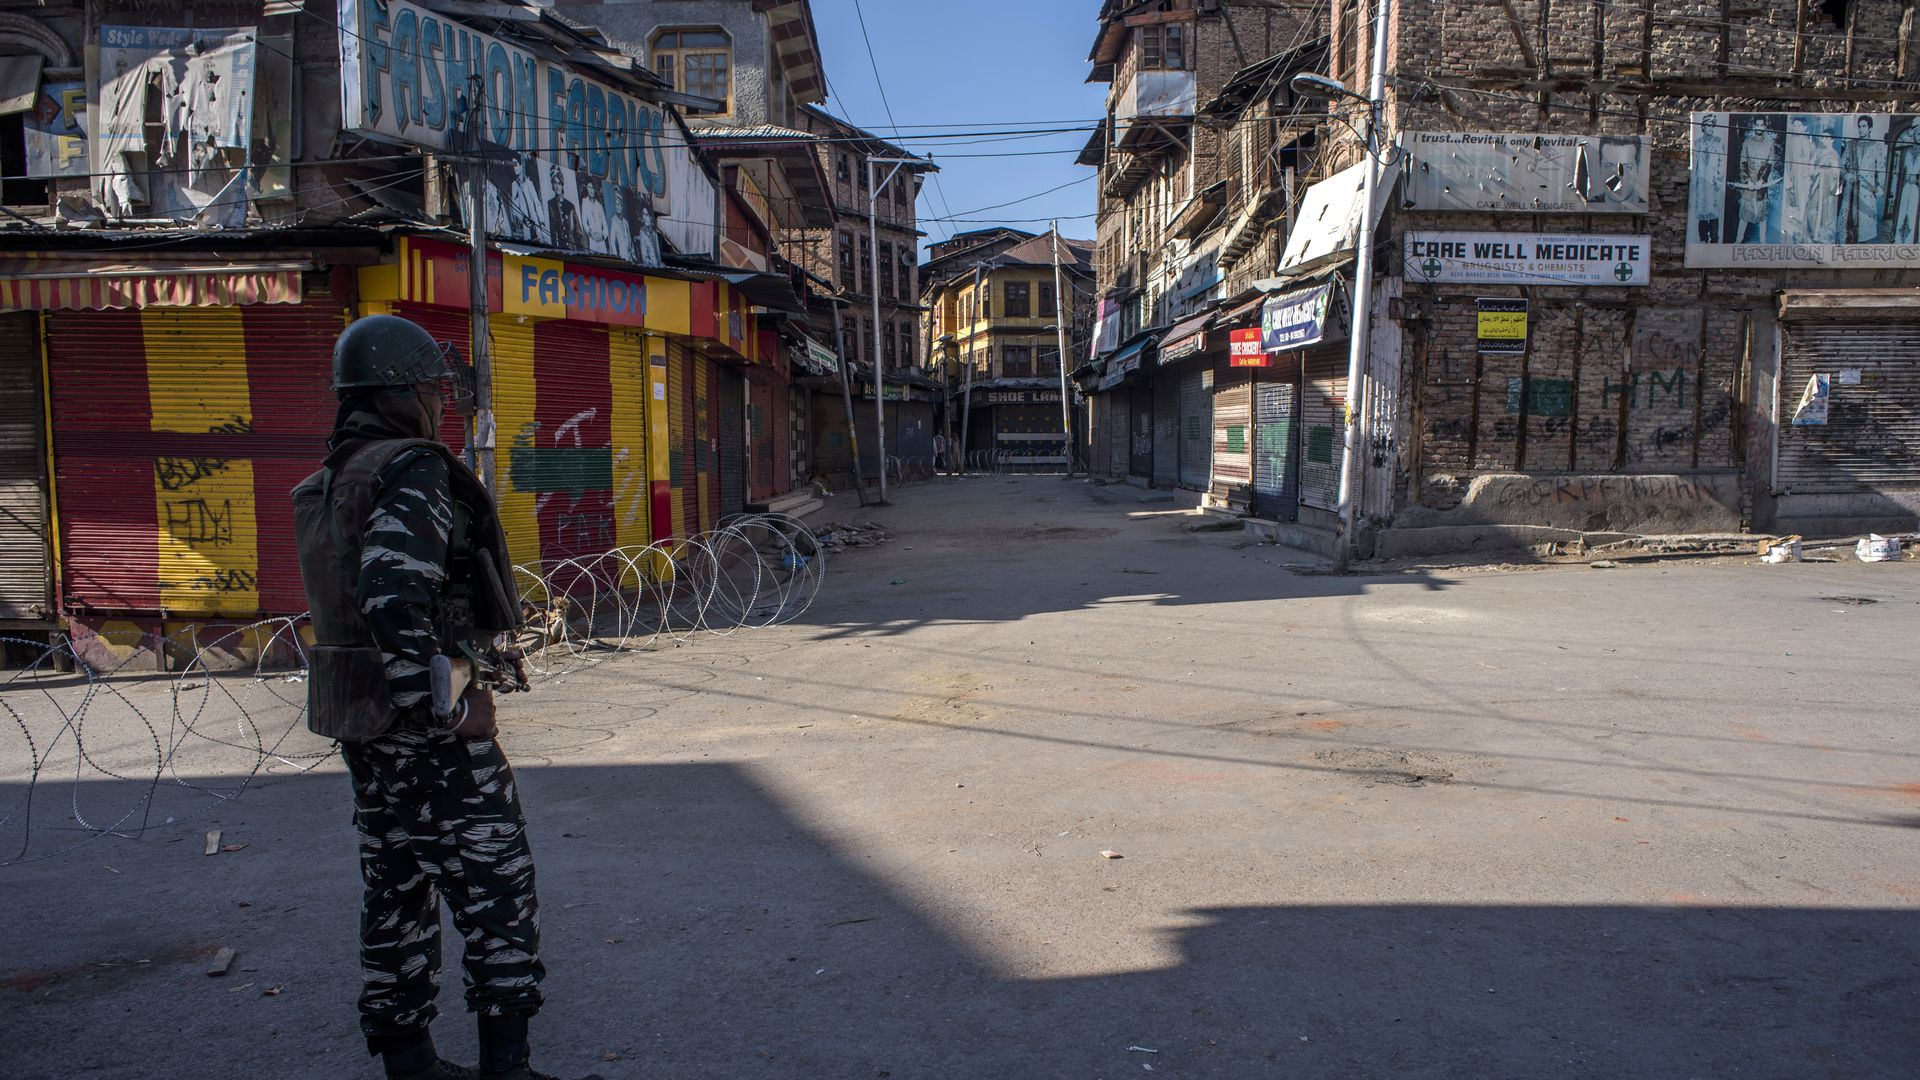 Pakistan struggles to rally the world against India's Kashmir crackdown